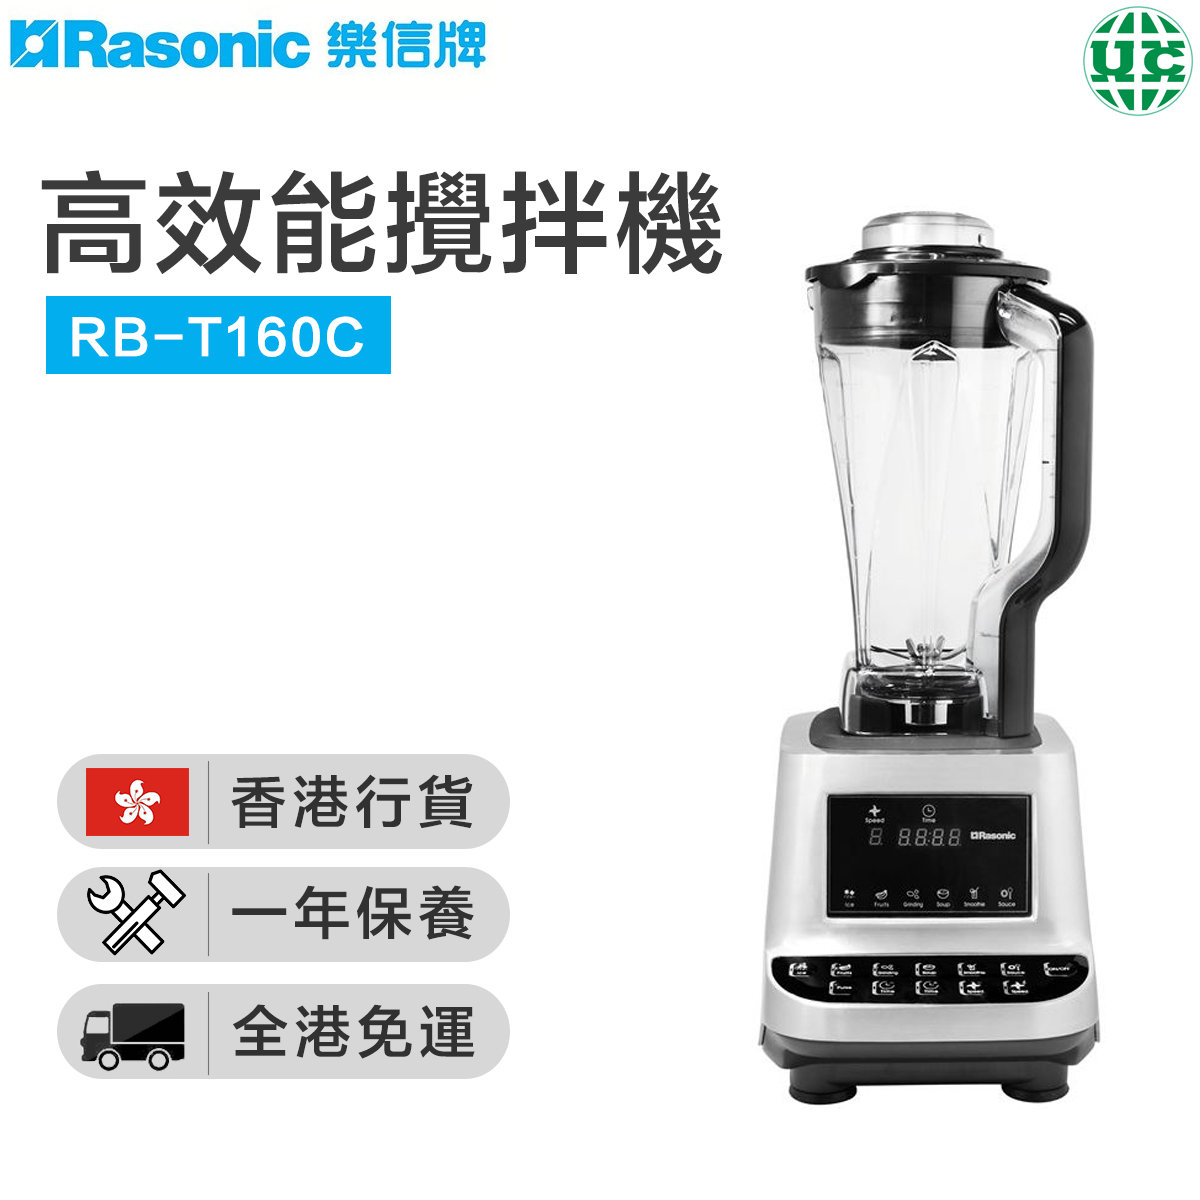 RB-T160C High Performance Mixer (Hong Kong licensed)